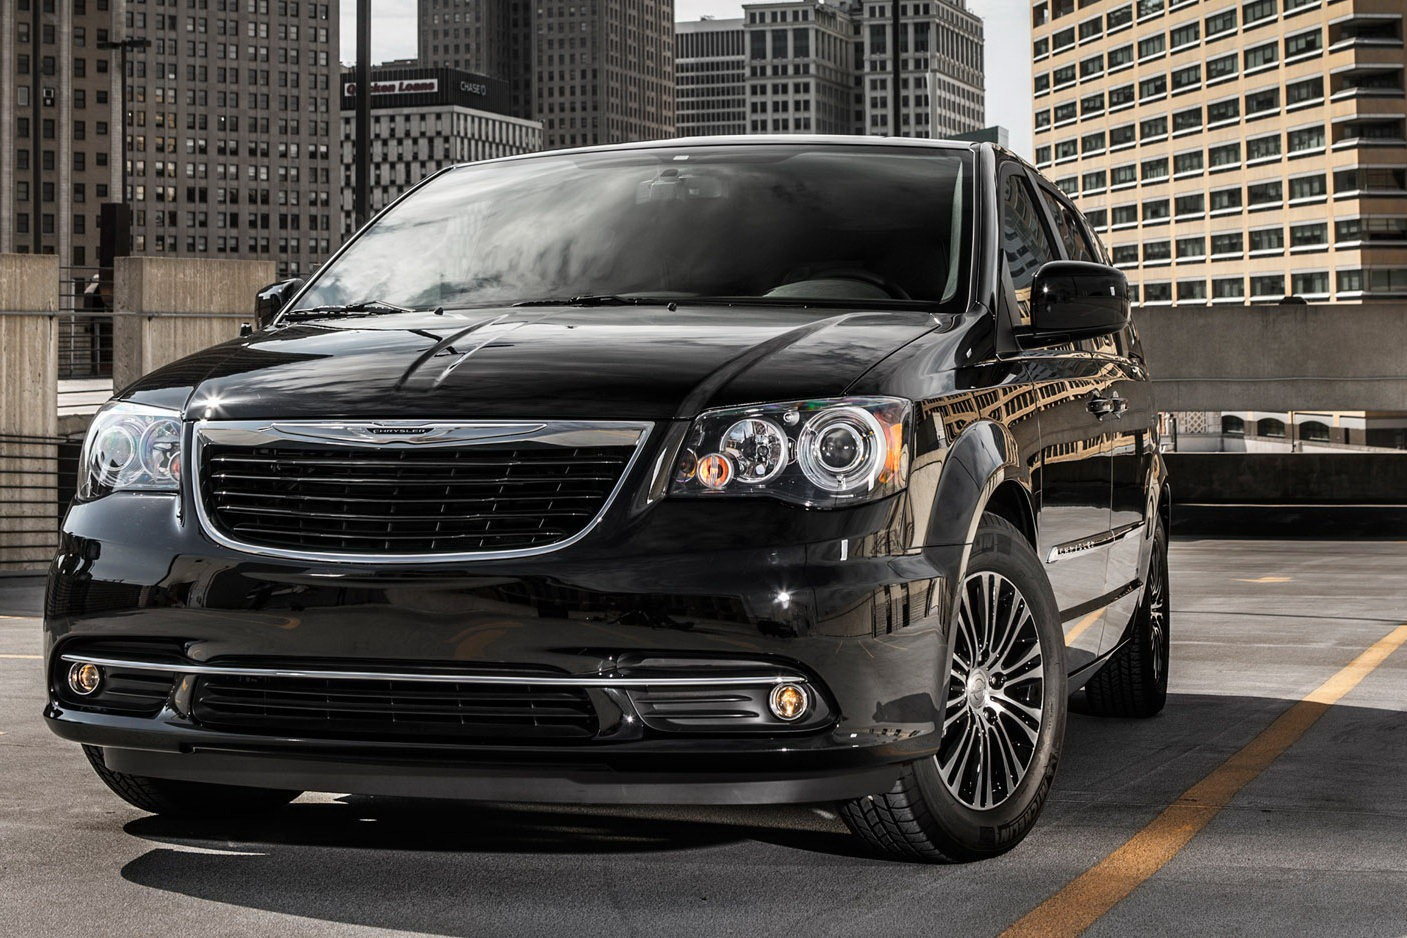 2013 Chrysler Town and Country S Edition